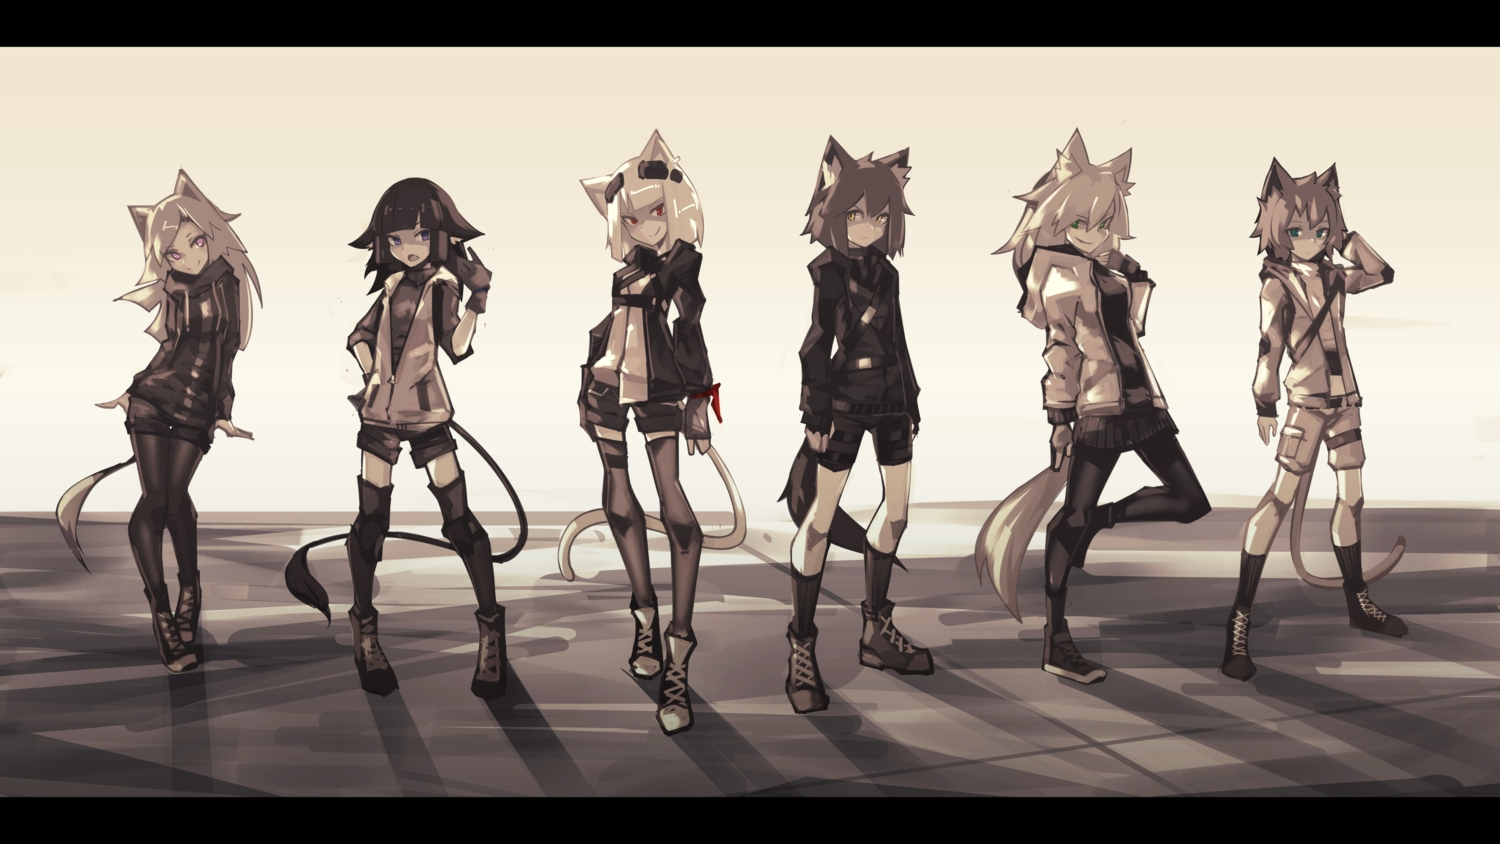 animal_ears blue_eyes boots catgirl deel_(rkeg) doggirl gloves green_eyes group hoodie kneehighs lisa_(deel) long_hair original pantyhose polychromatic purple_eyes ramn red_eyes short_hair shorts skirt tail thighhighs wolfgirl yellow_eyes